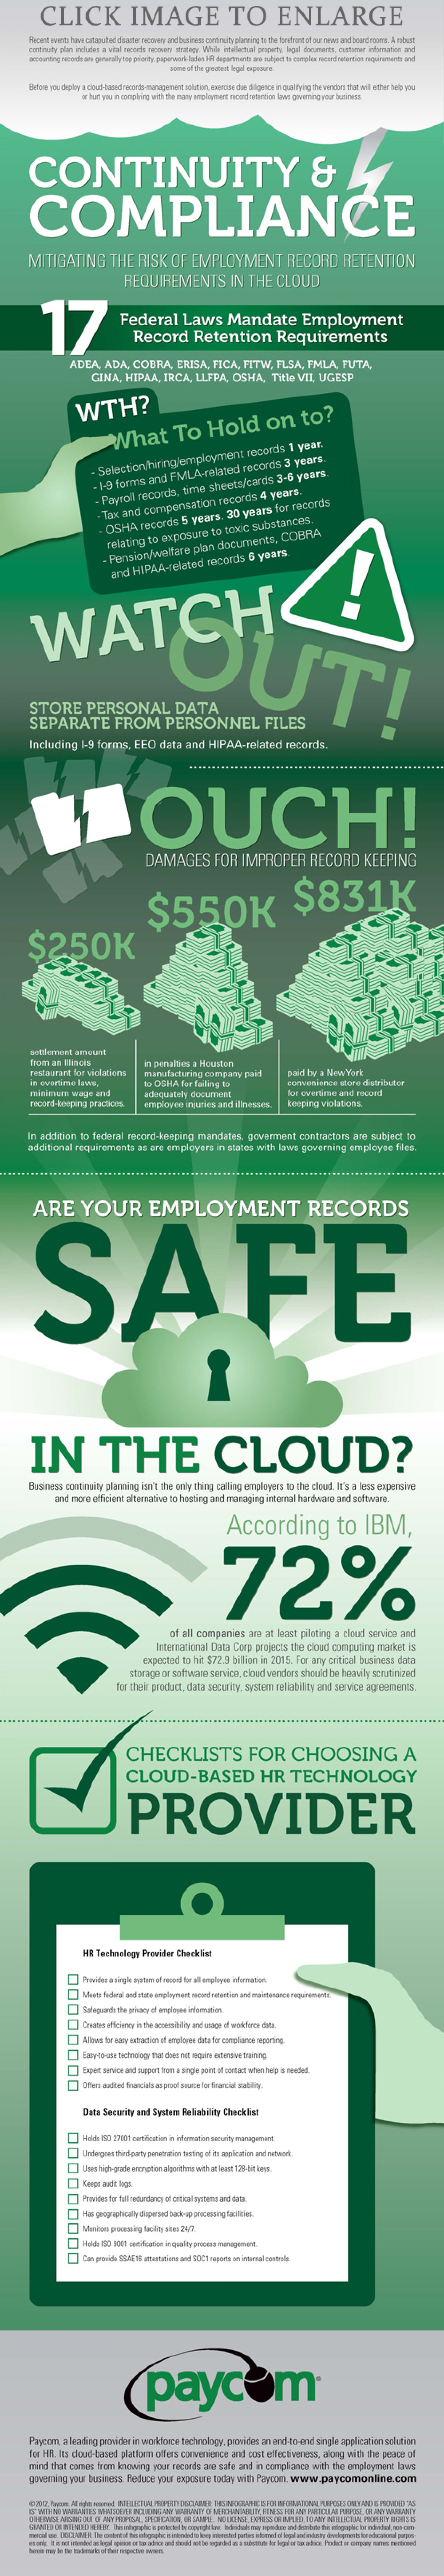 Avoid a Cloudtastrophy: 2  HR checklists for Choosing a Cloud-Based Technology Provider Infographic